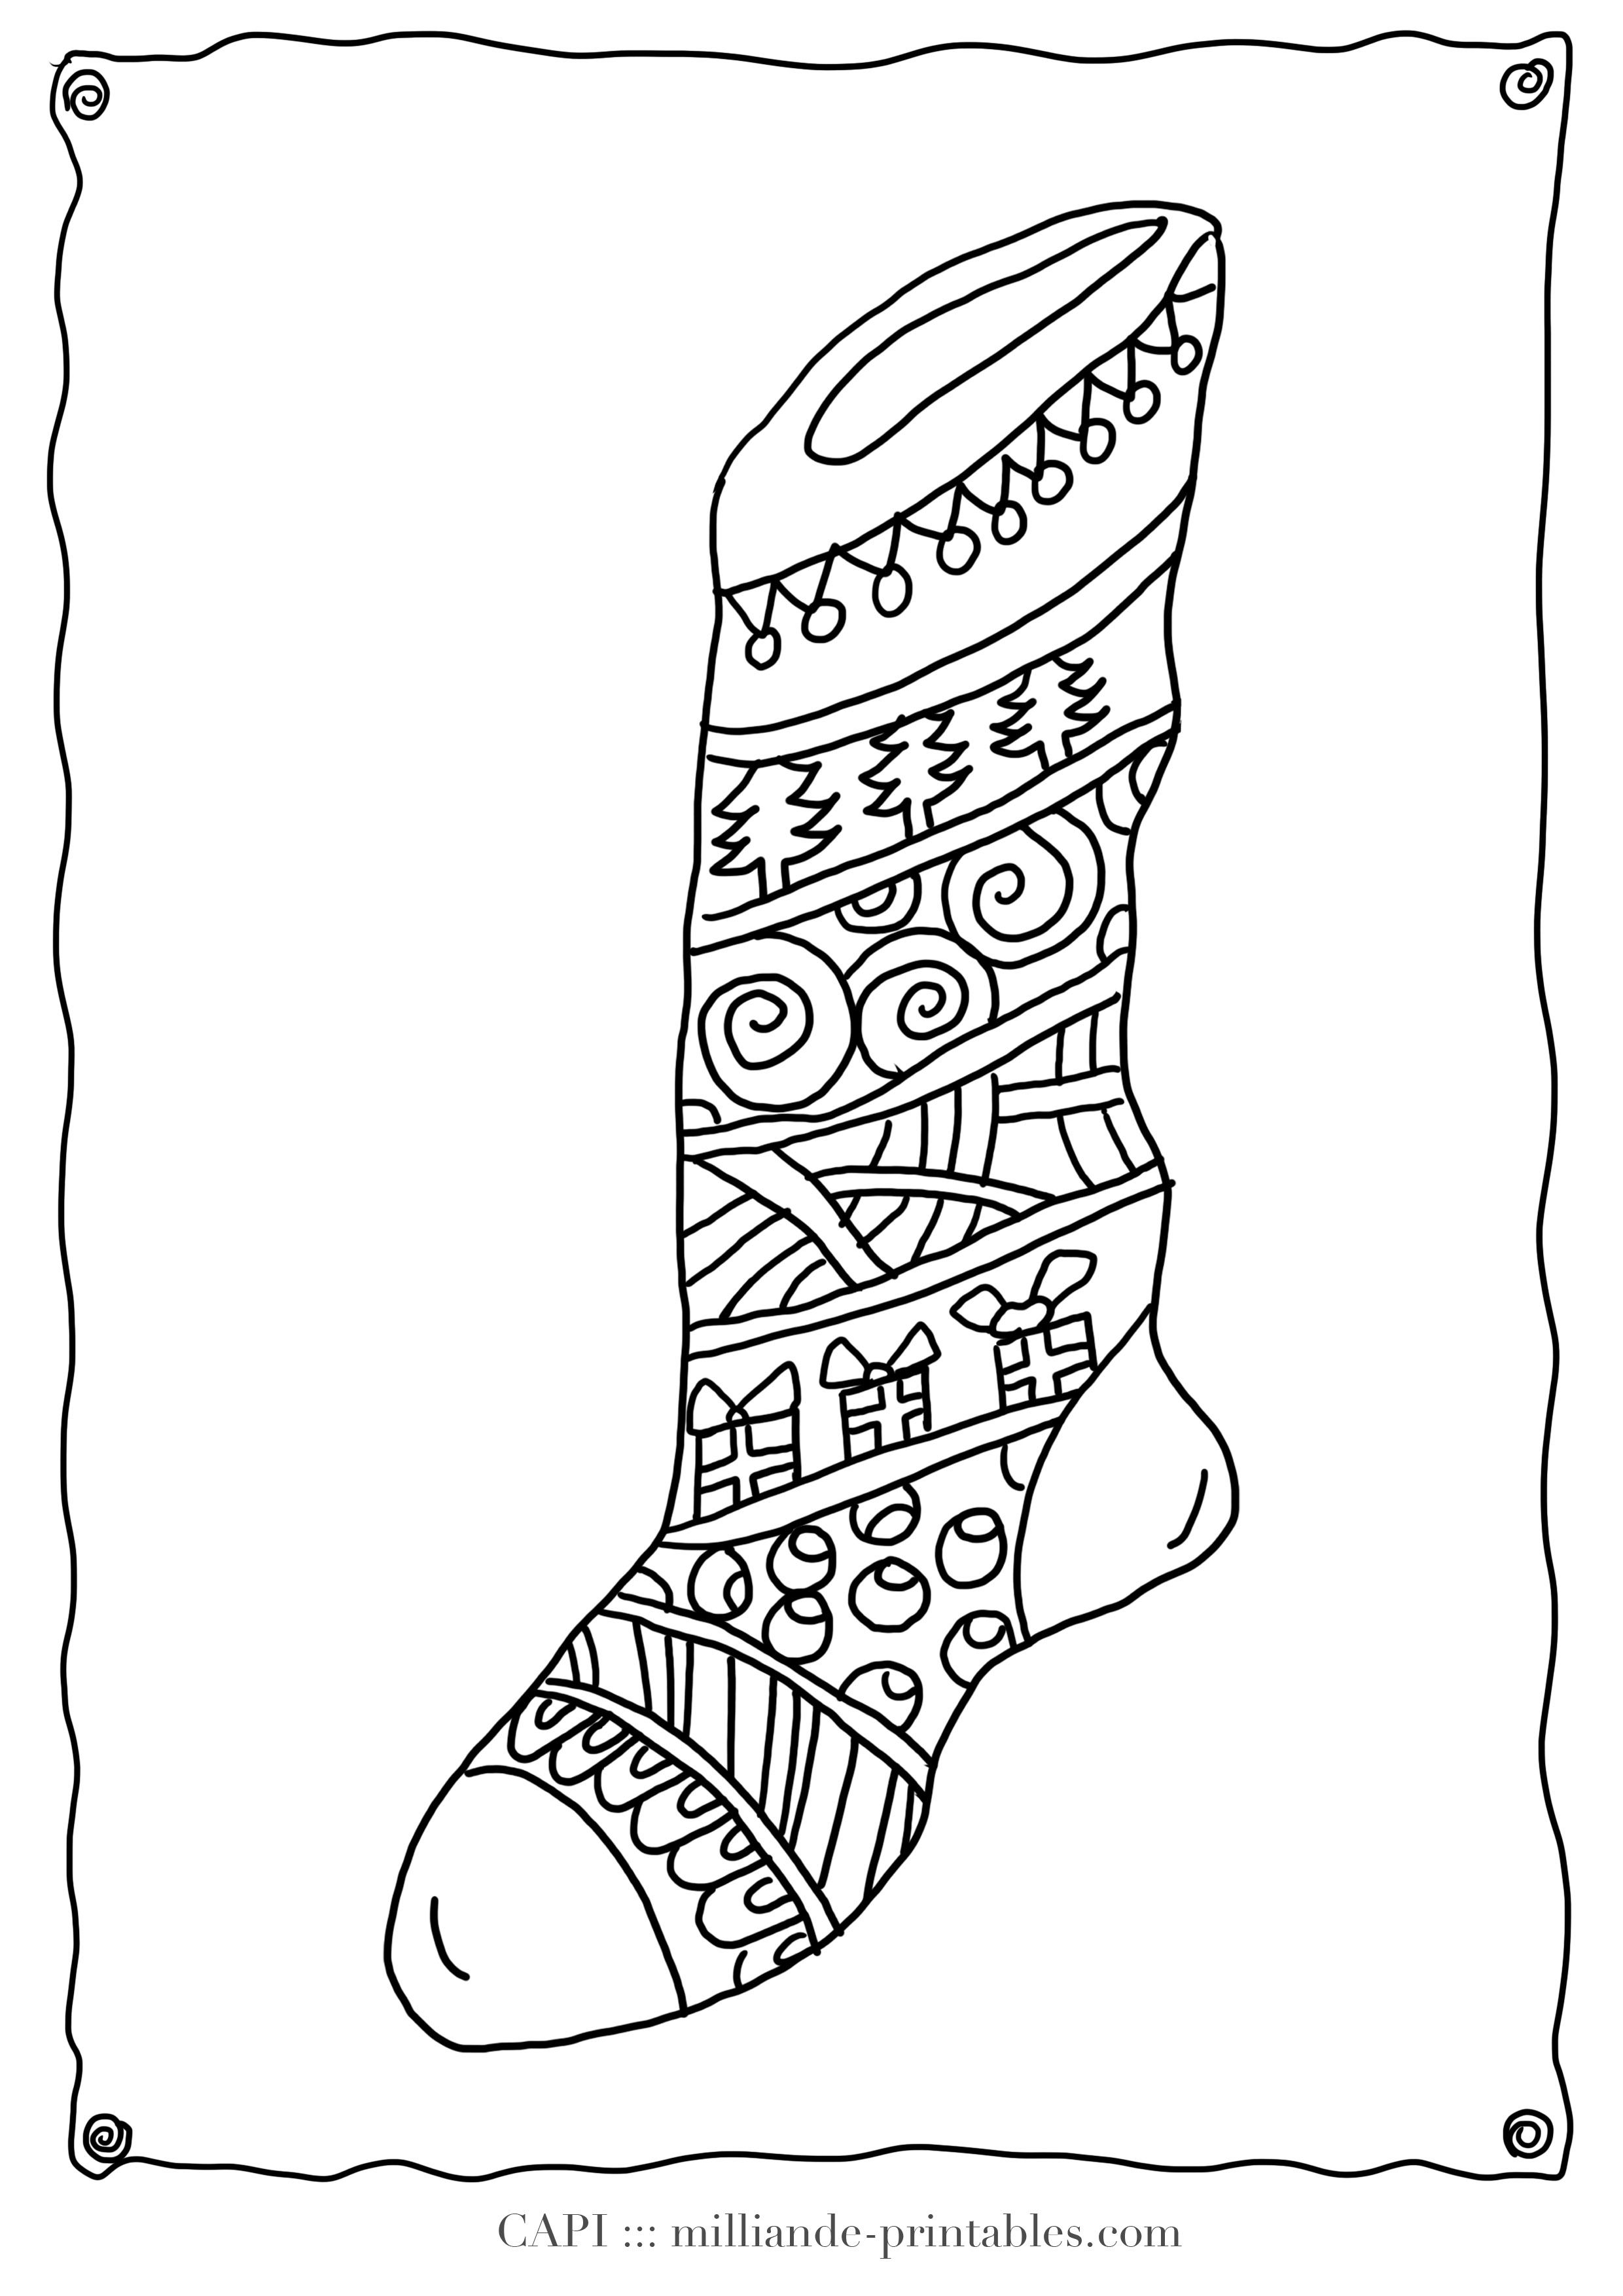 Christmas Coloring Pages Stocking With Page Milliande S Original Free